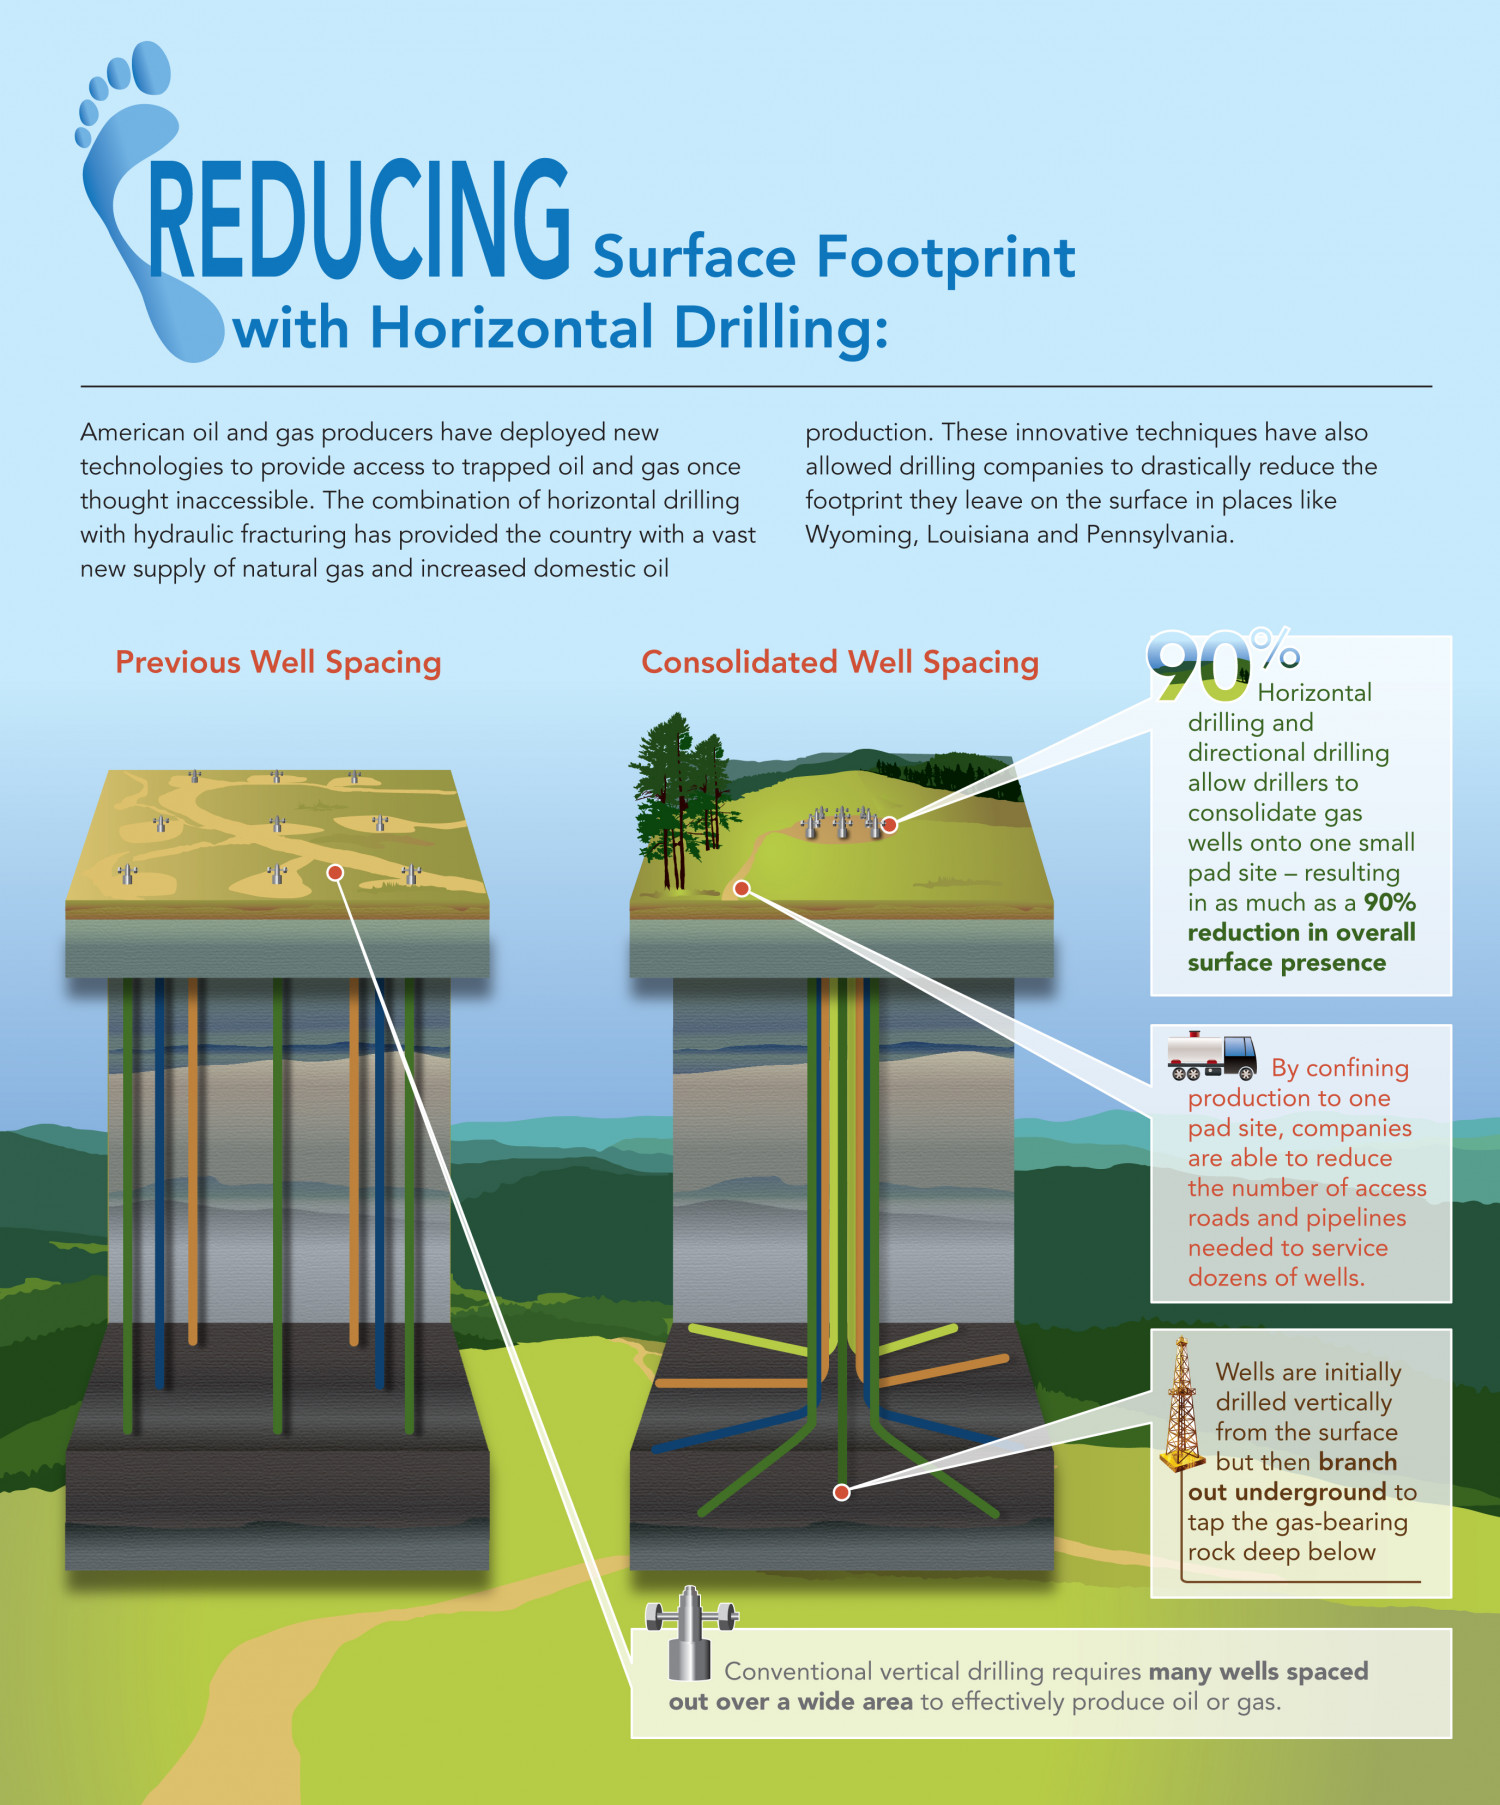 Horizontal Drilling Footprint Infographic